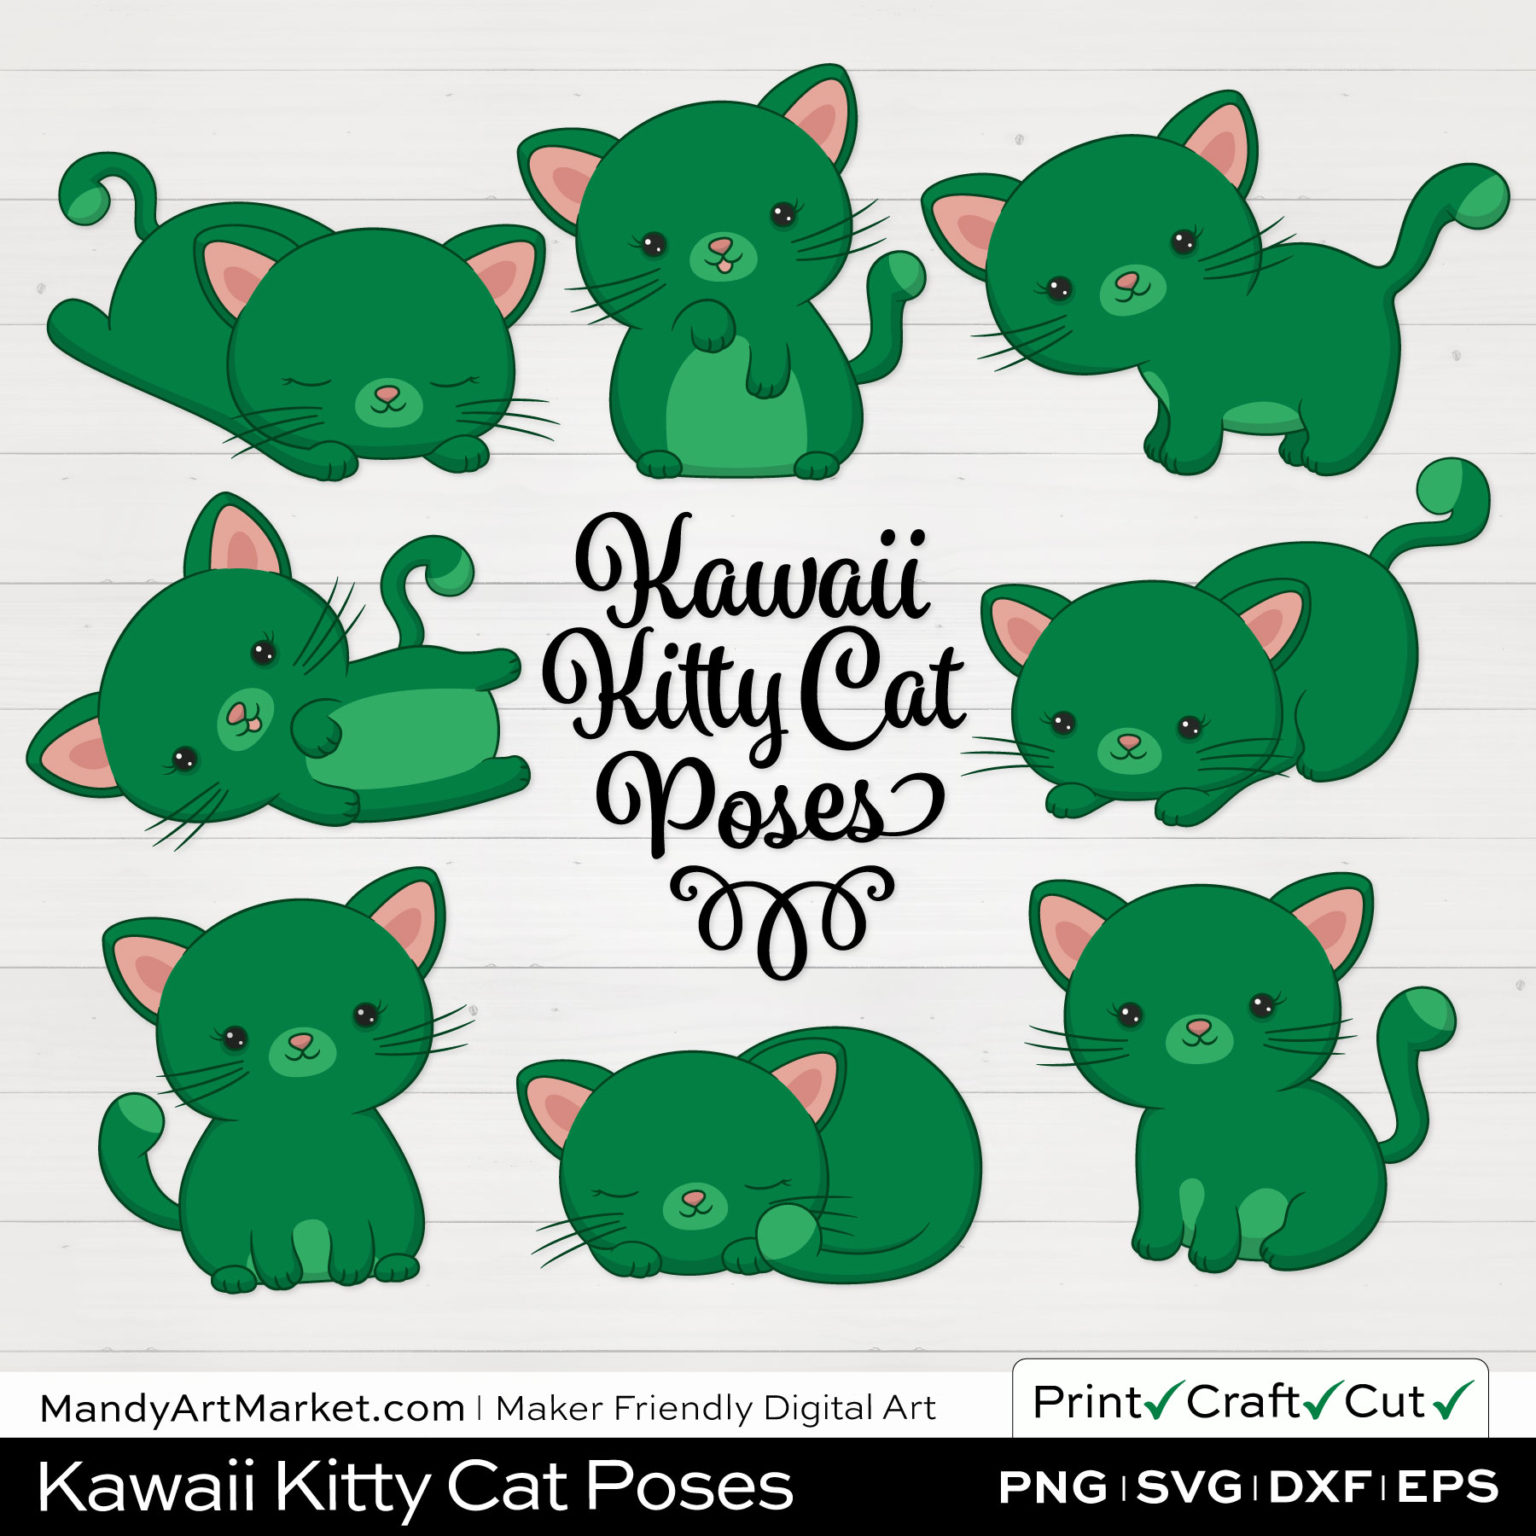 Emerald Green Kawaii Kitty Cat Poses Clipart on White Background